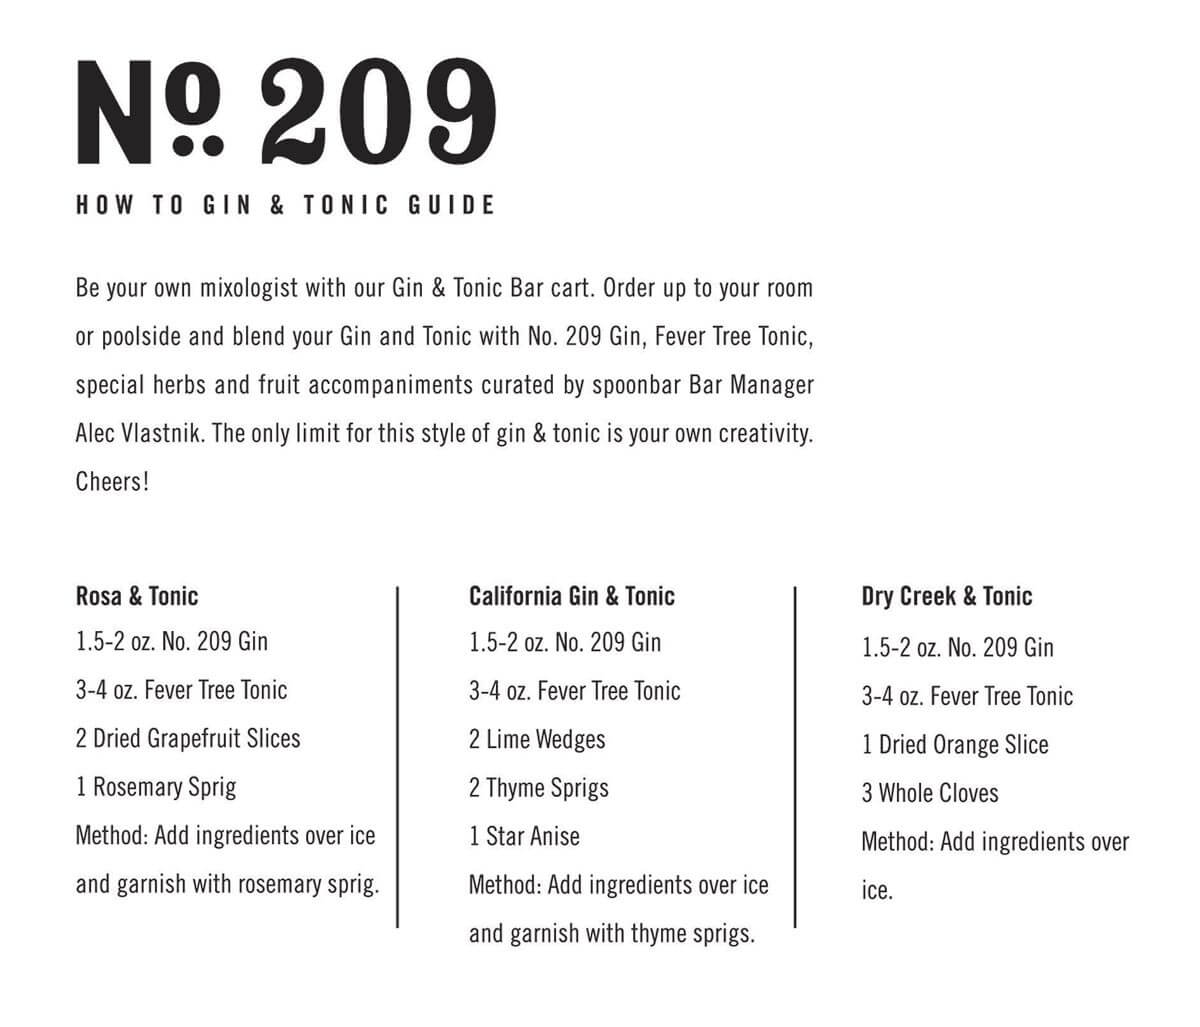 No. 209 Gin and Tonic How To Guide